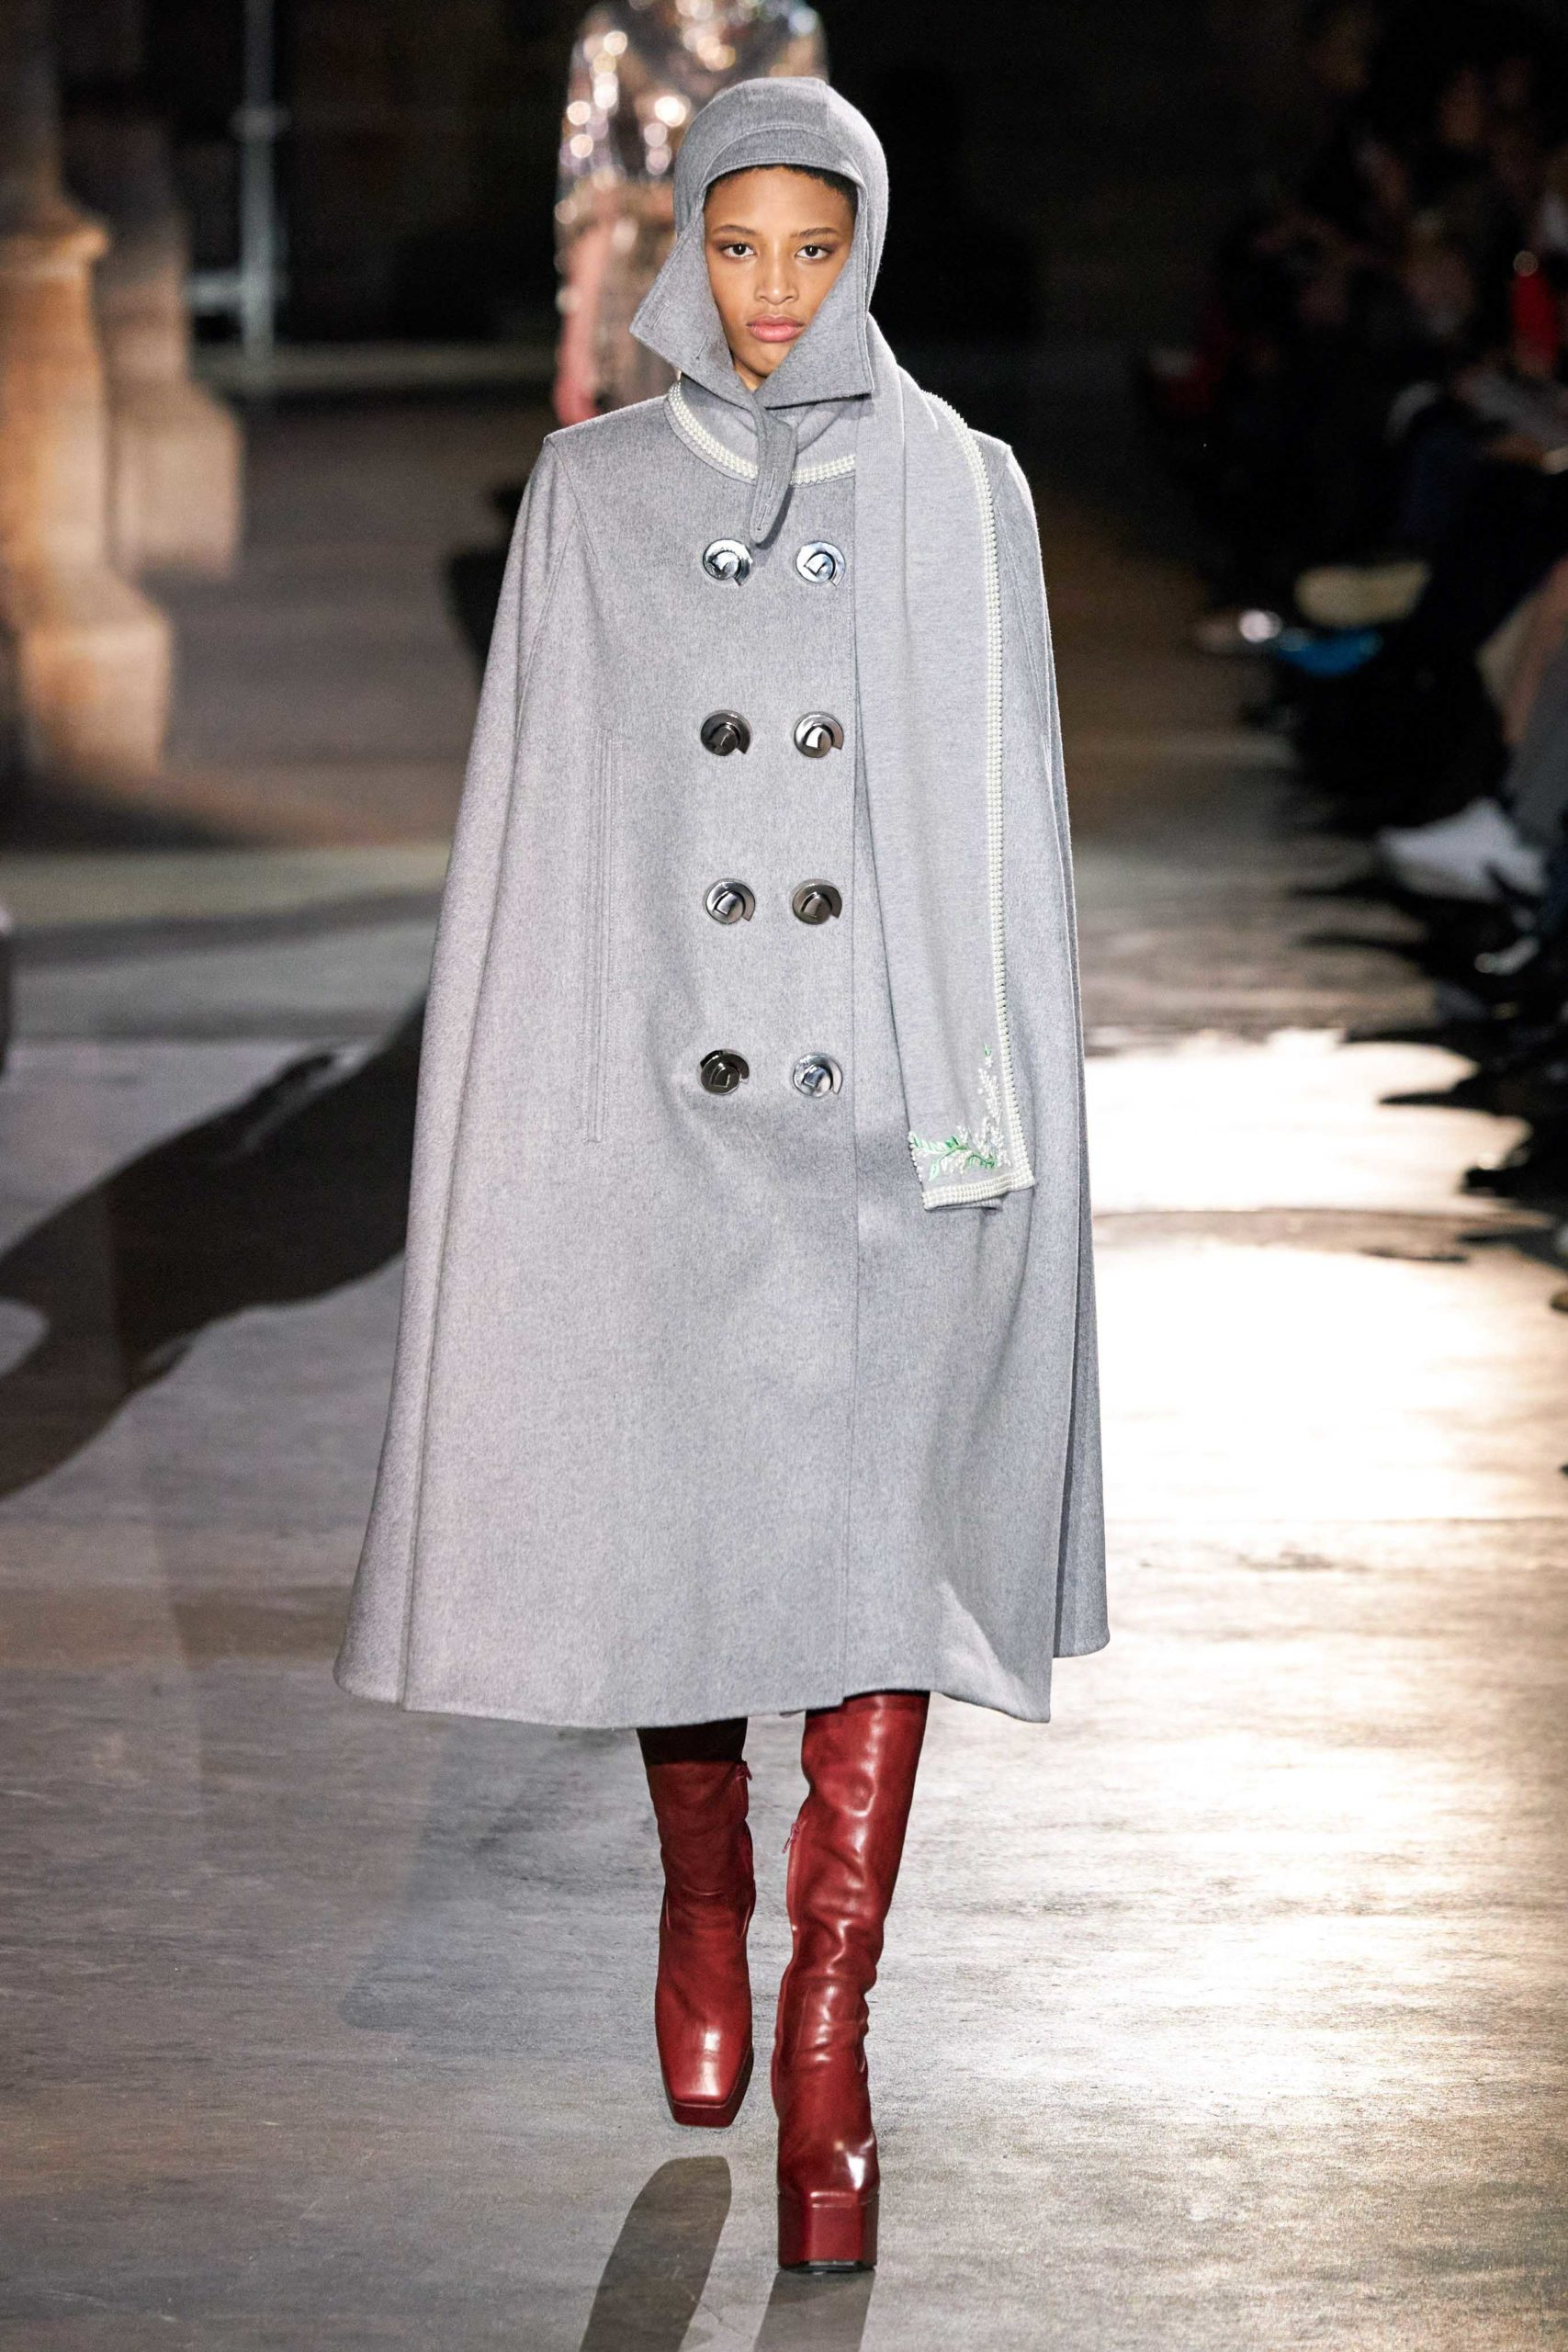 Paco Rabanne Fall Winter 2020 trends runway coverage Ready To Wear Vogue details capes with gloves